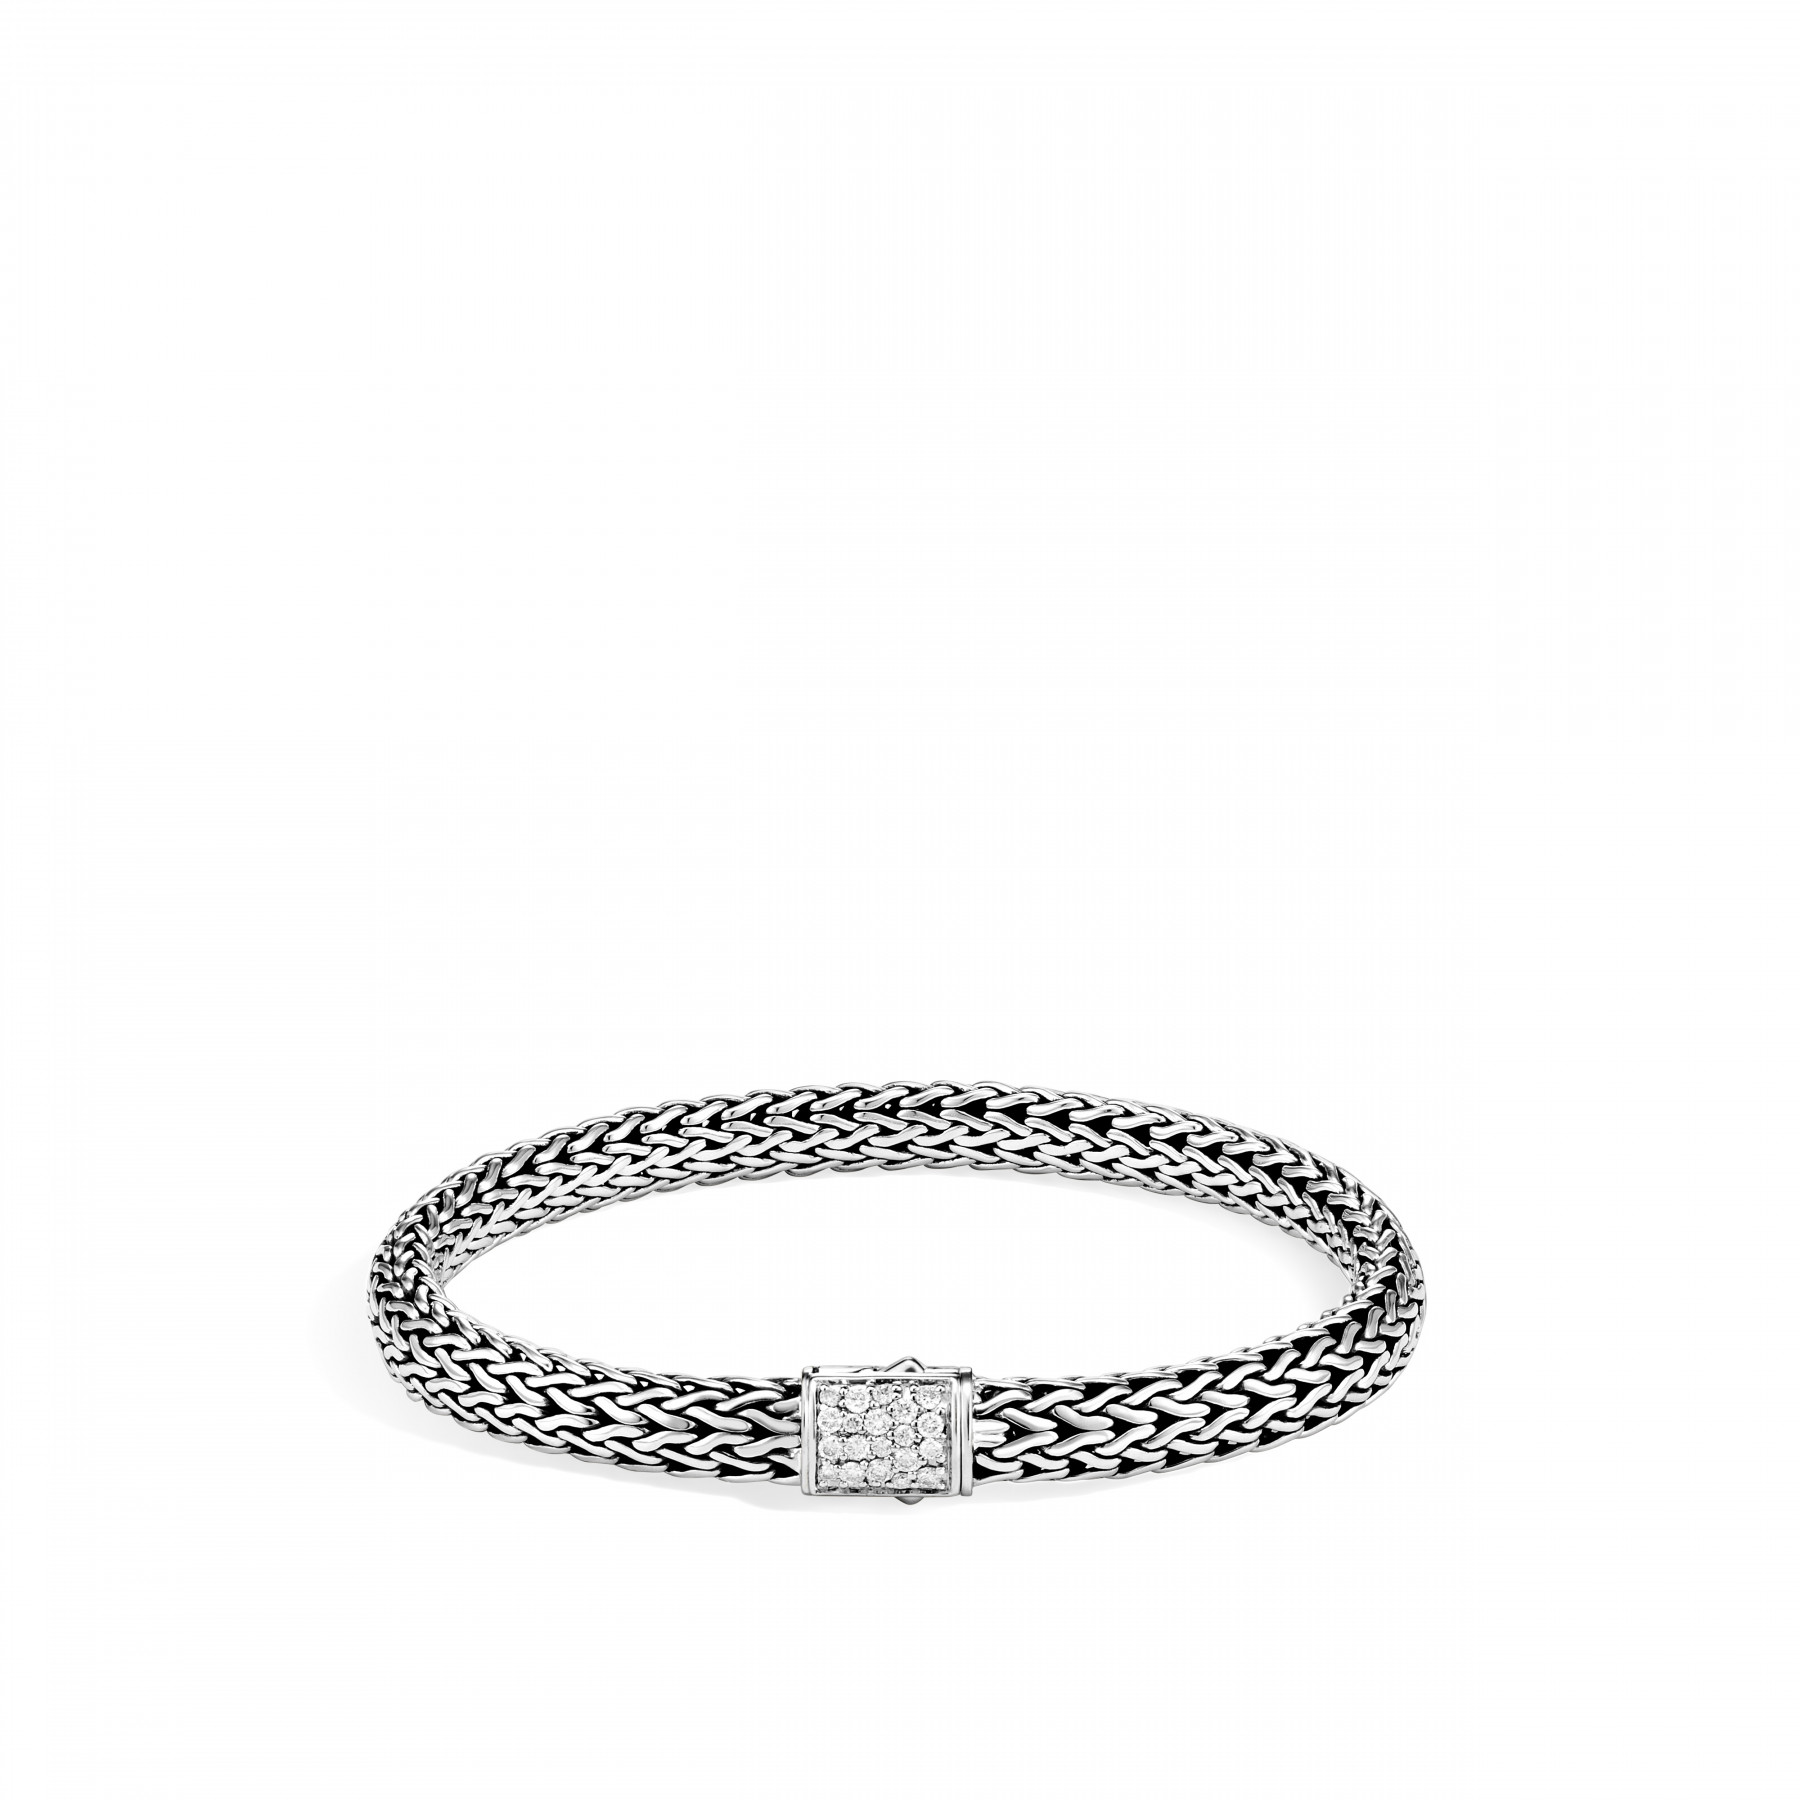 John Hardy Classic Chain Diamond and Peridot Bracelet - 6.5MM in Silver front image